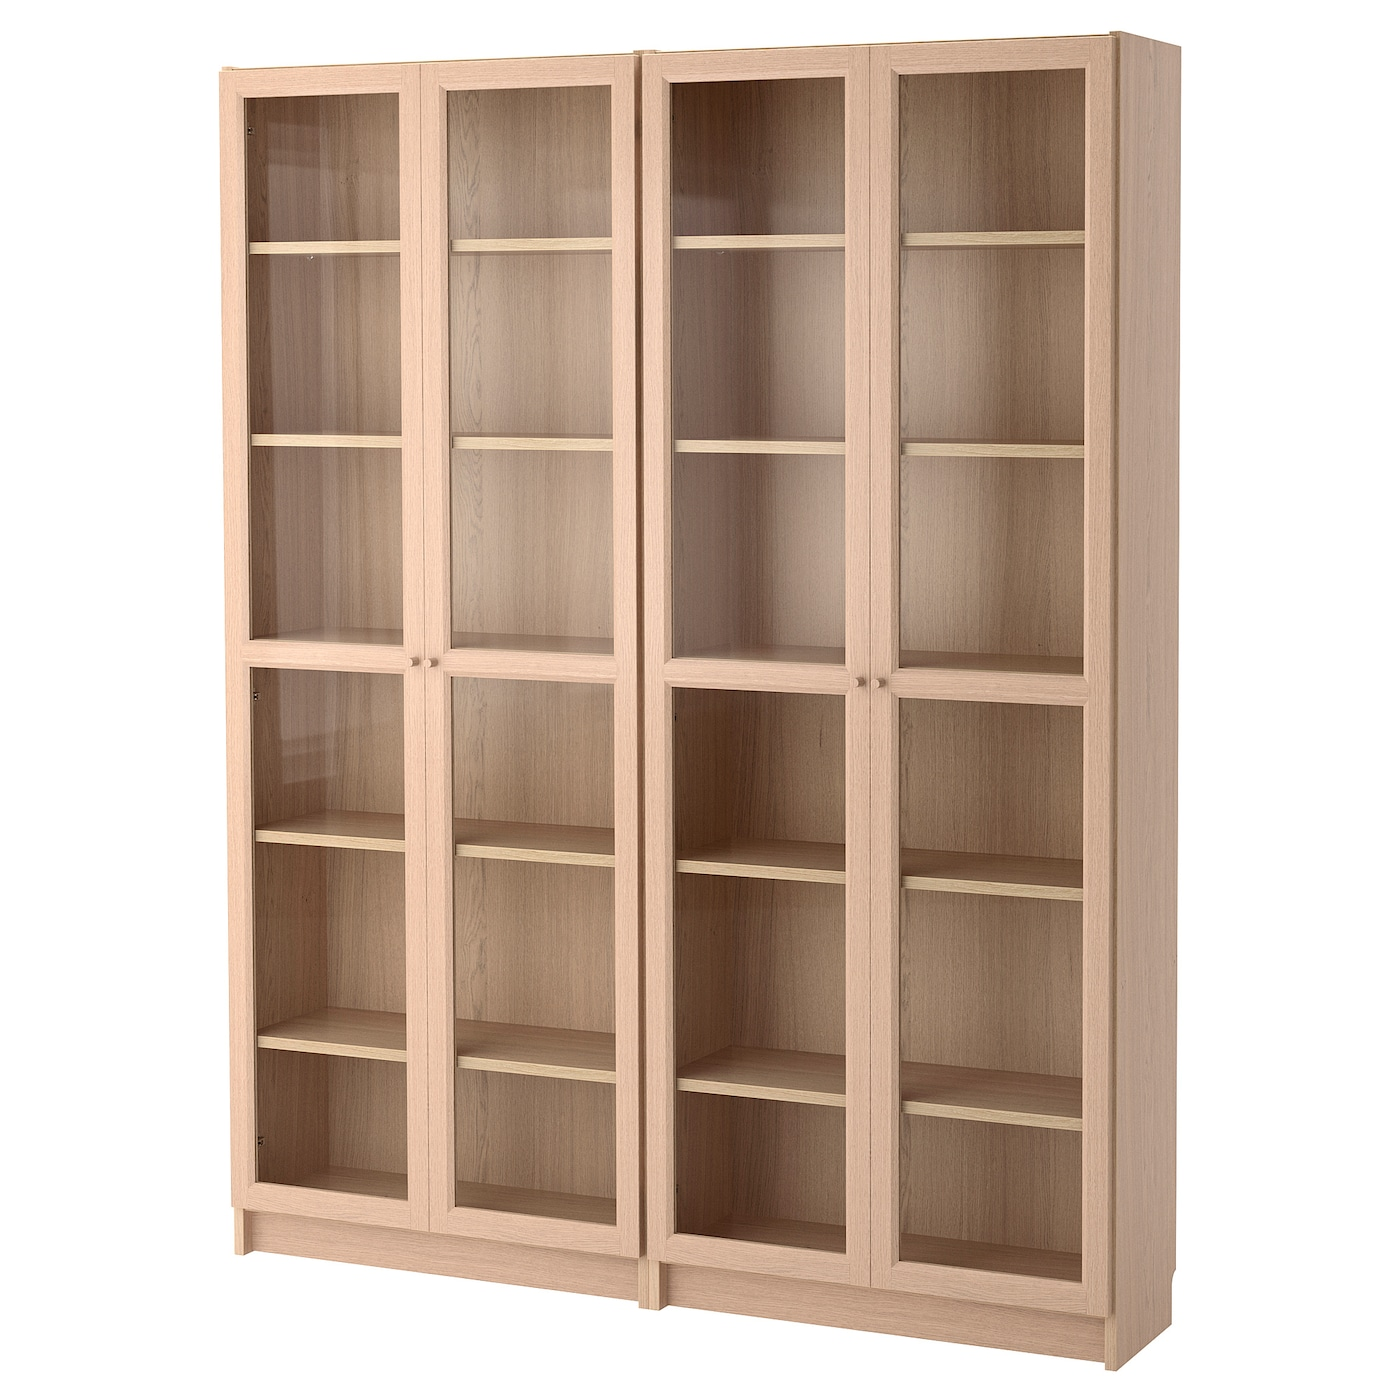 billy oxberg bookcase combination glass doors white stained oak veneer glass 160 x 202 x 30 cm. Black Bedroom Furniture Sets. Home Design Ideas